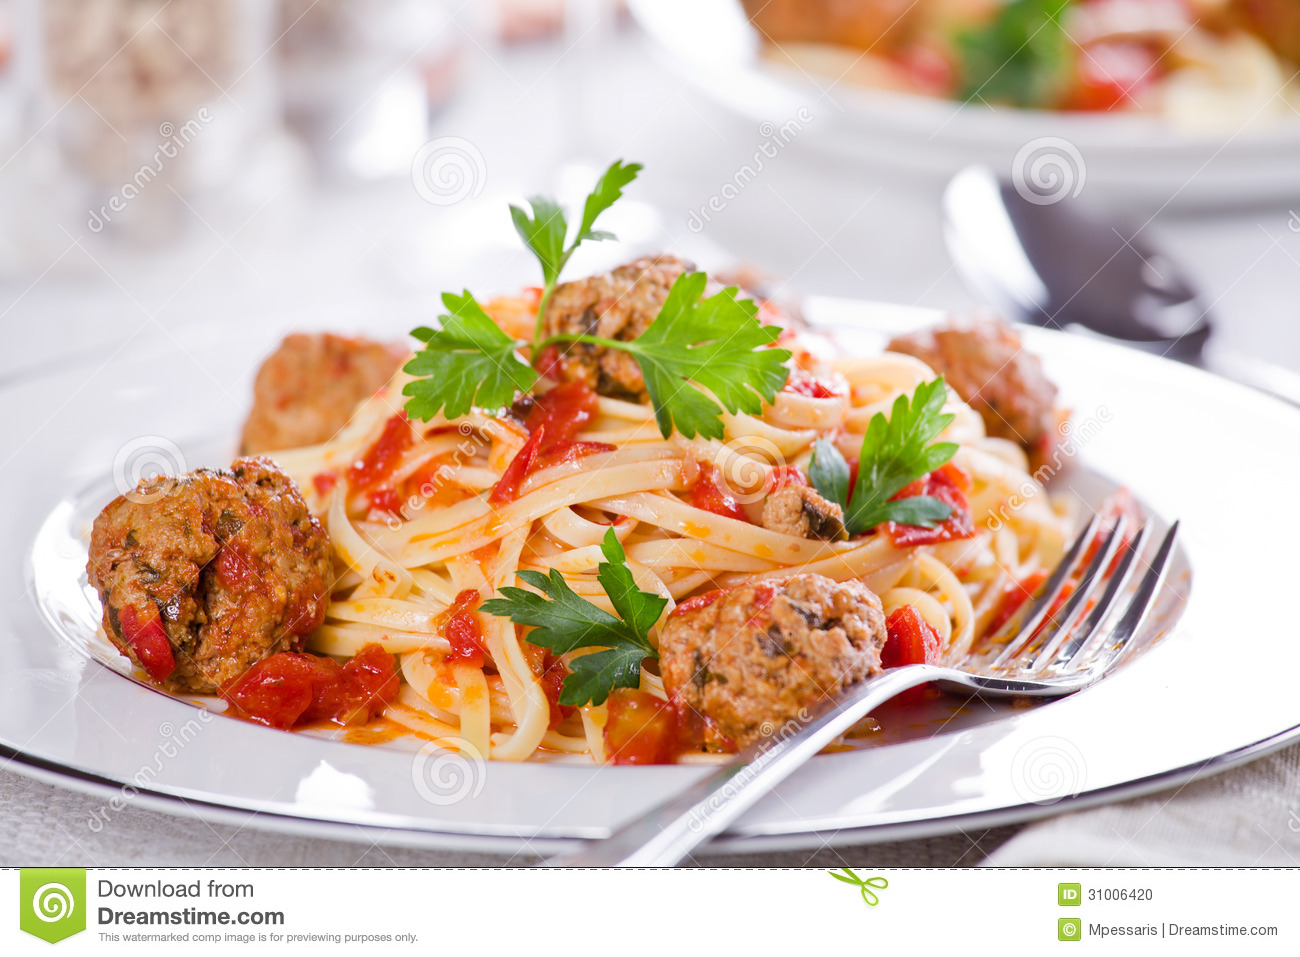 Let's cook some delicious angel chicken pasta! Collect the ingredients, mix them and cook! twinarchiveju.tk;.